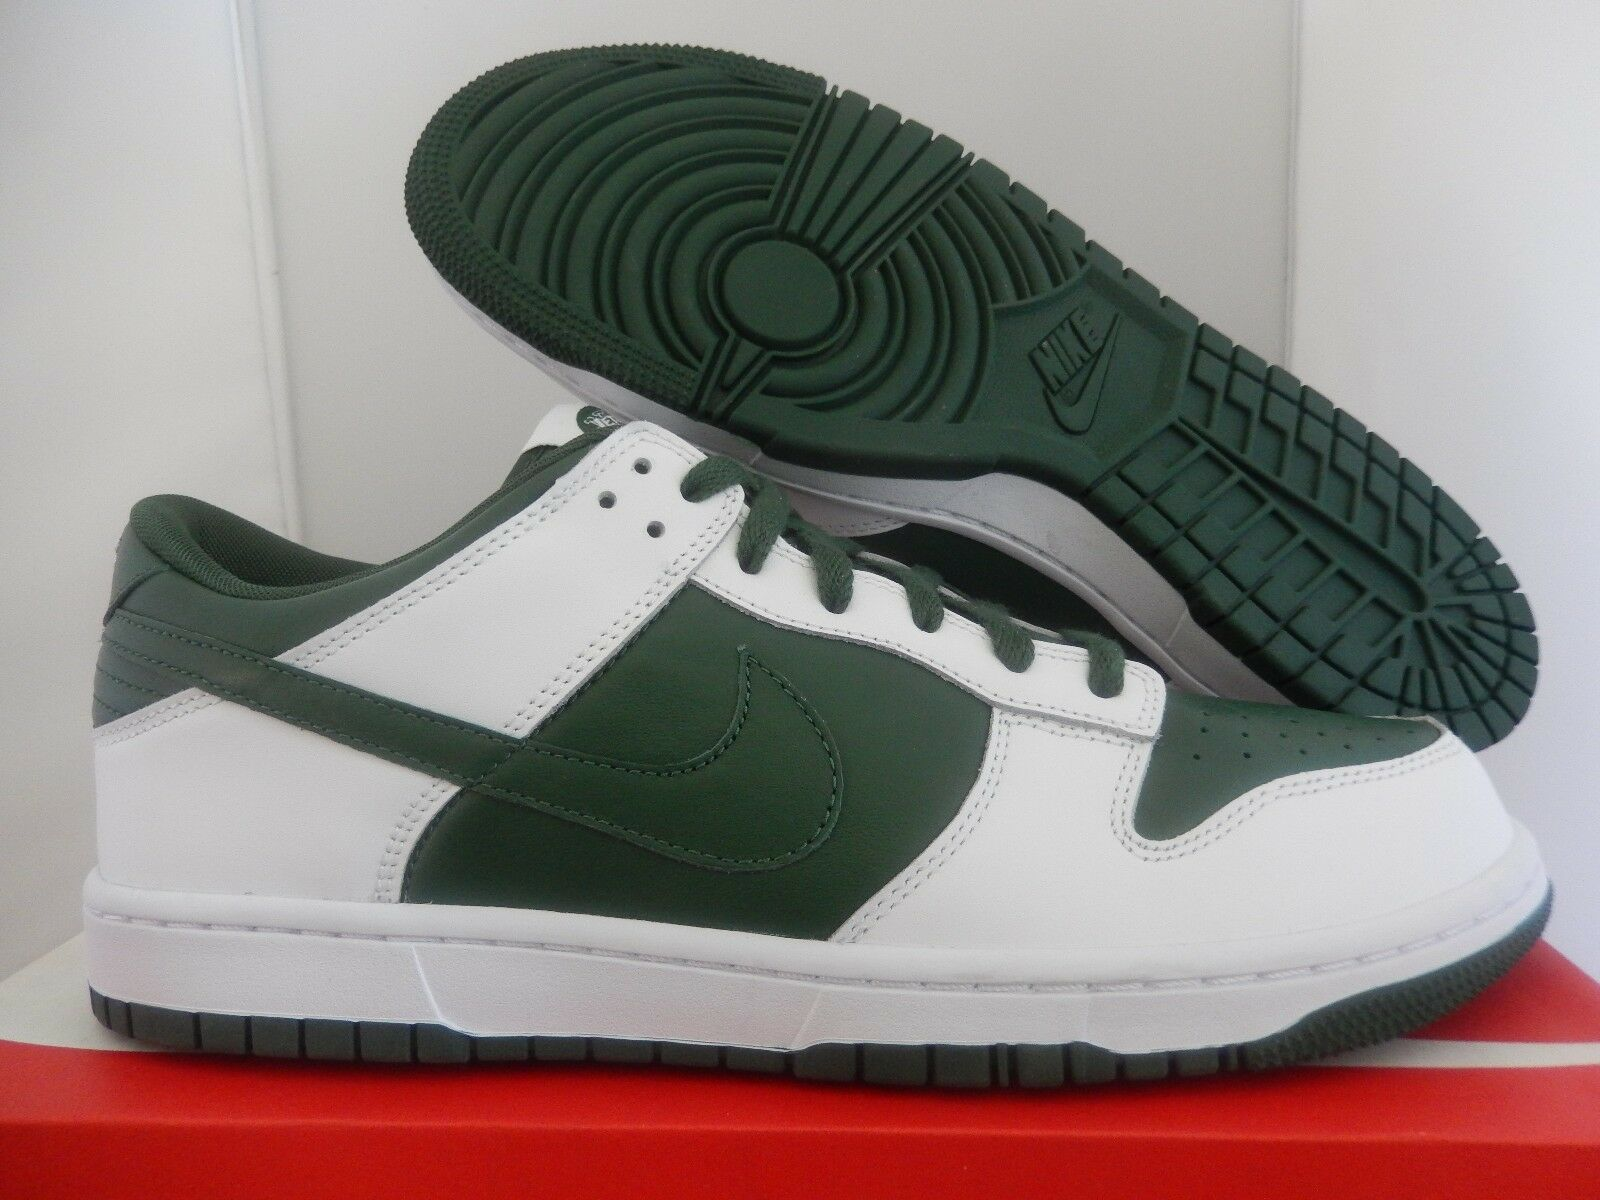 NIKE NY DUNK LOW iD NFL NY NIKE NEW YORK JETS GREEN-WHITE SZ 11.5 [535081-901] 860887